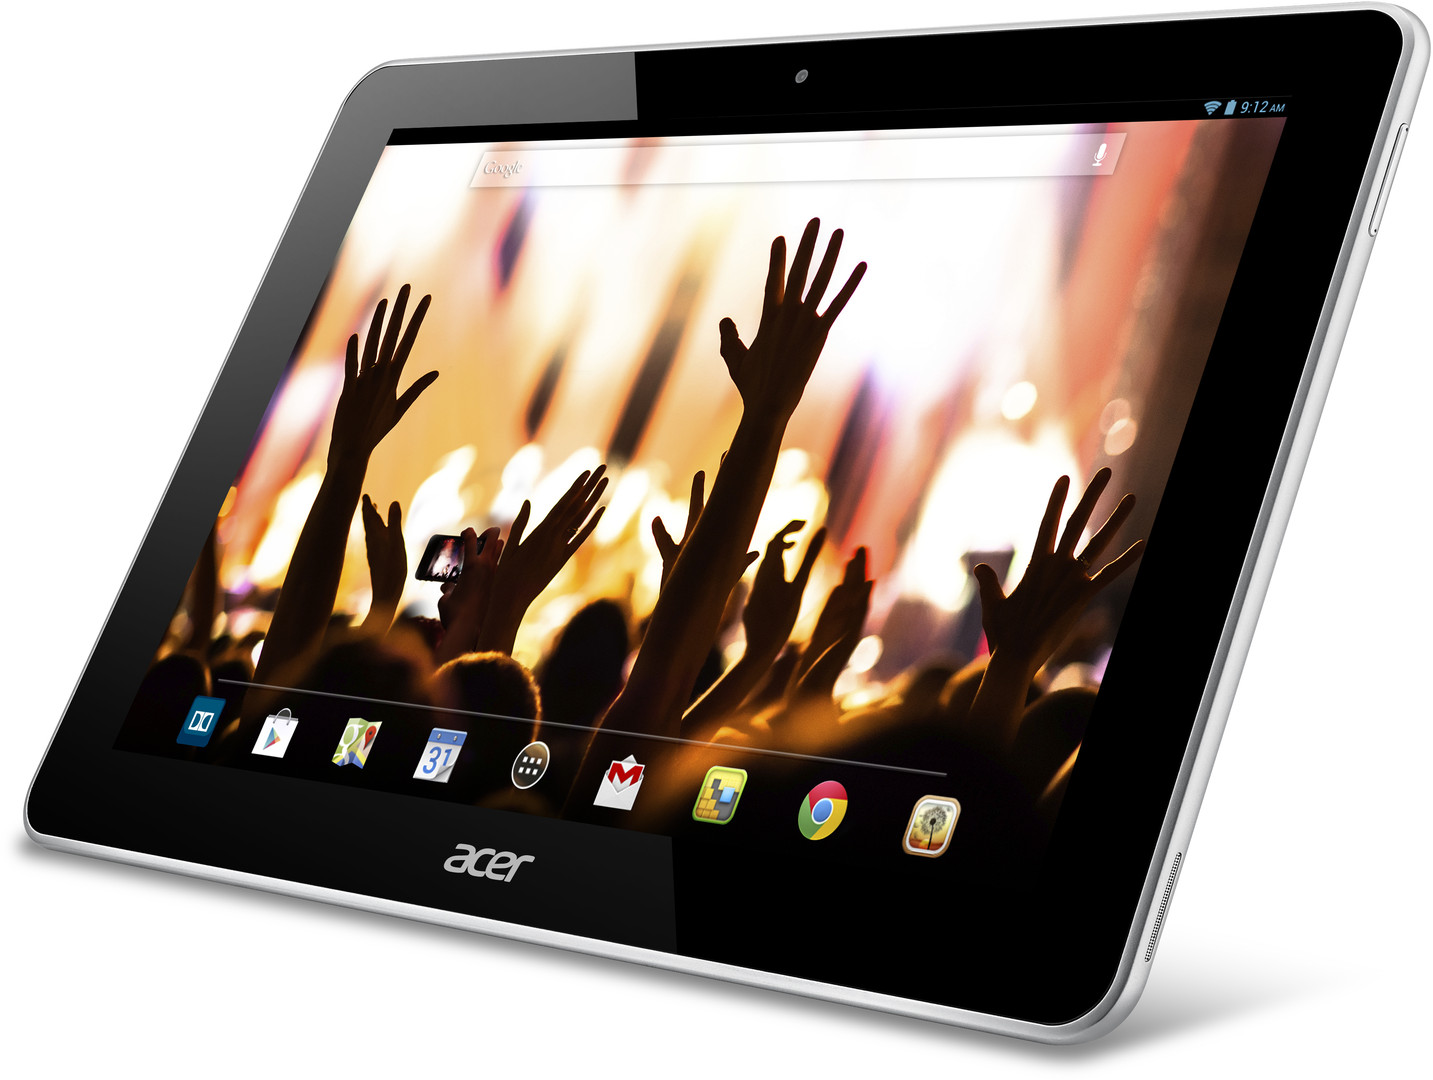 Acer Iconia A3 display